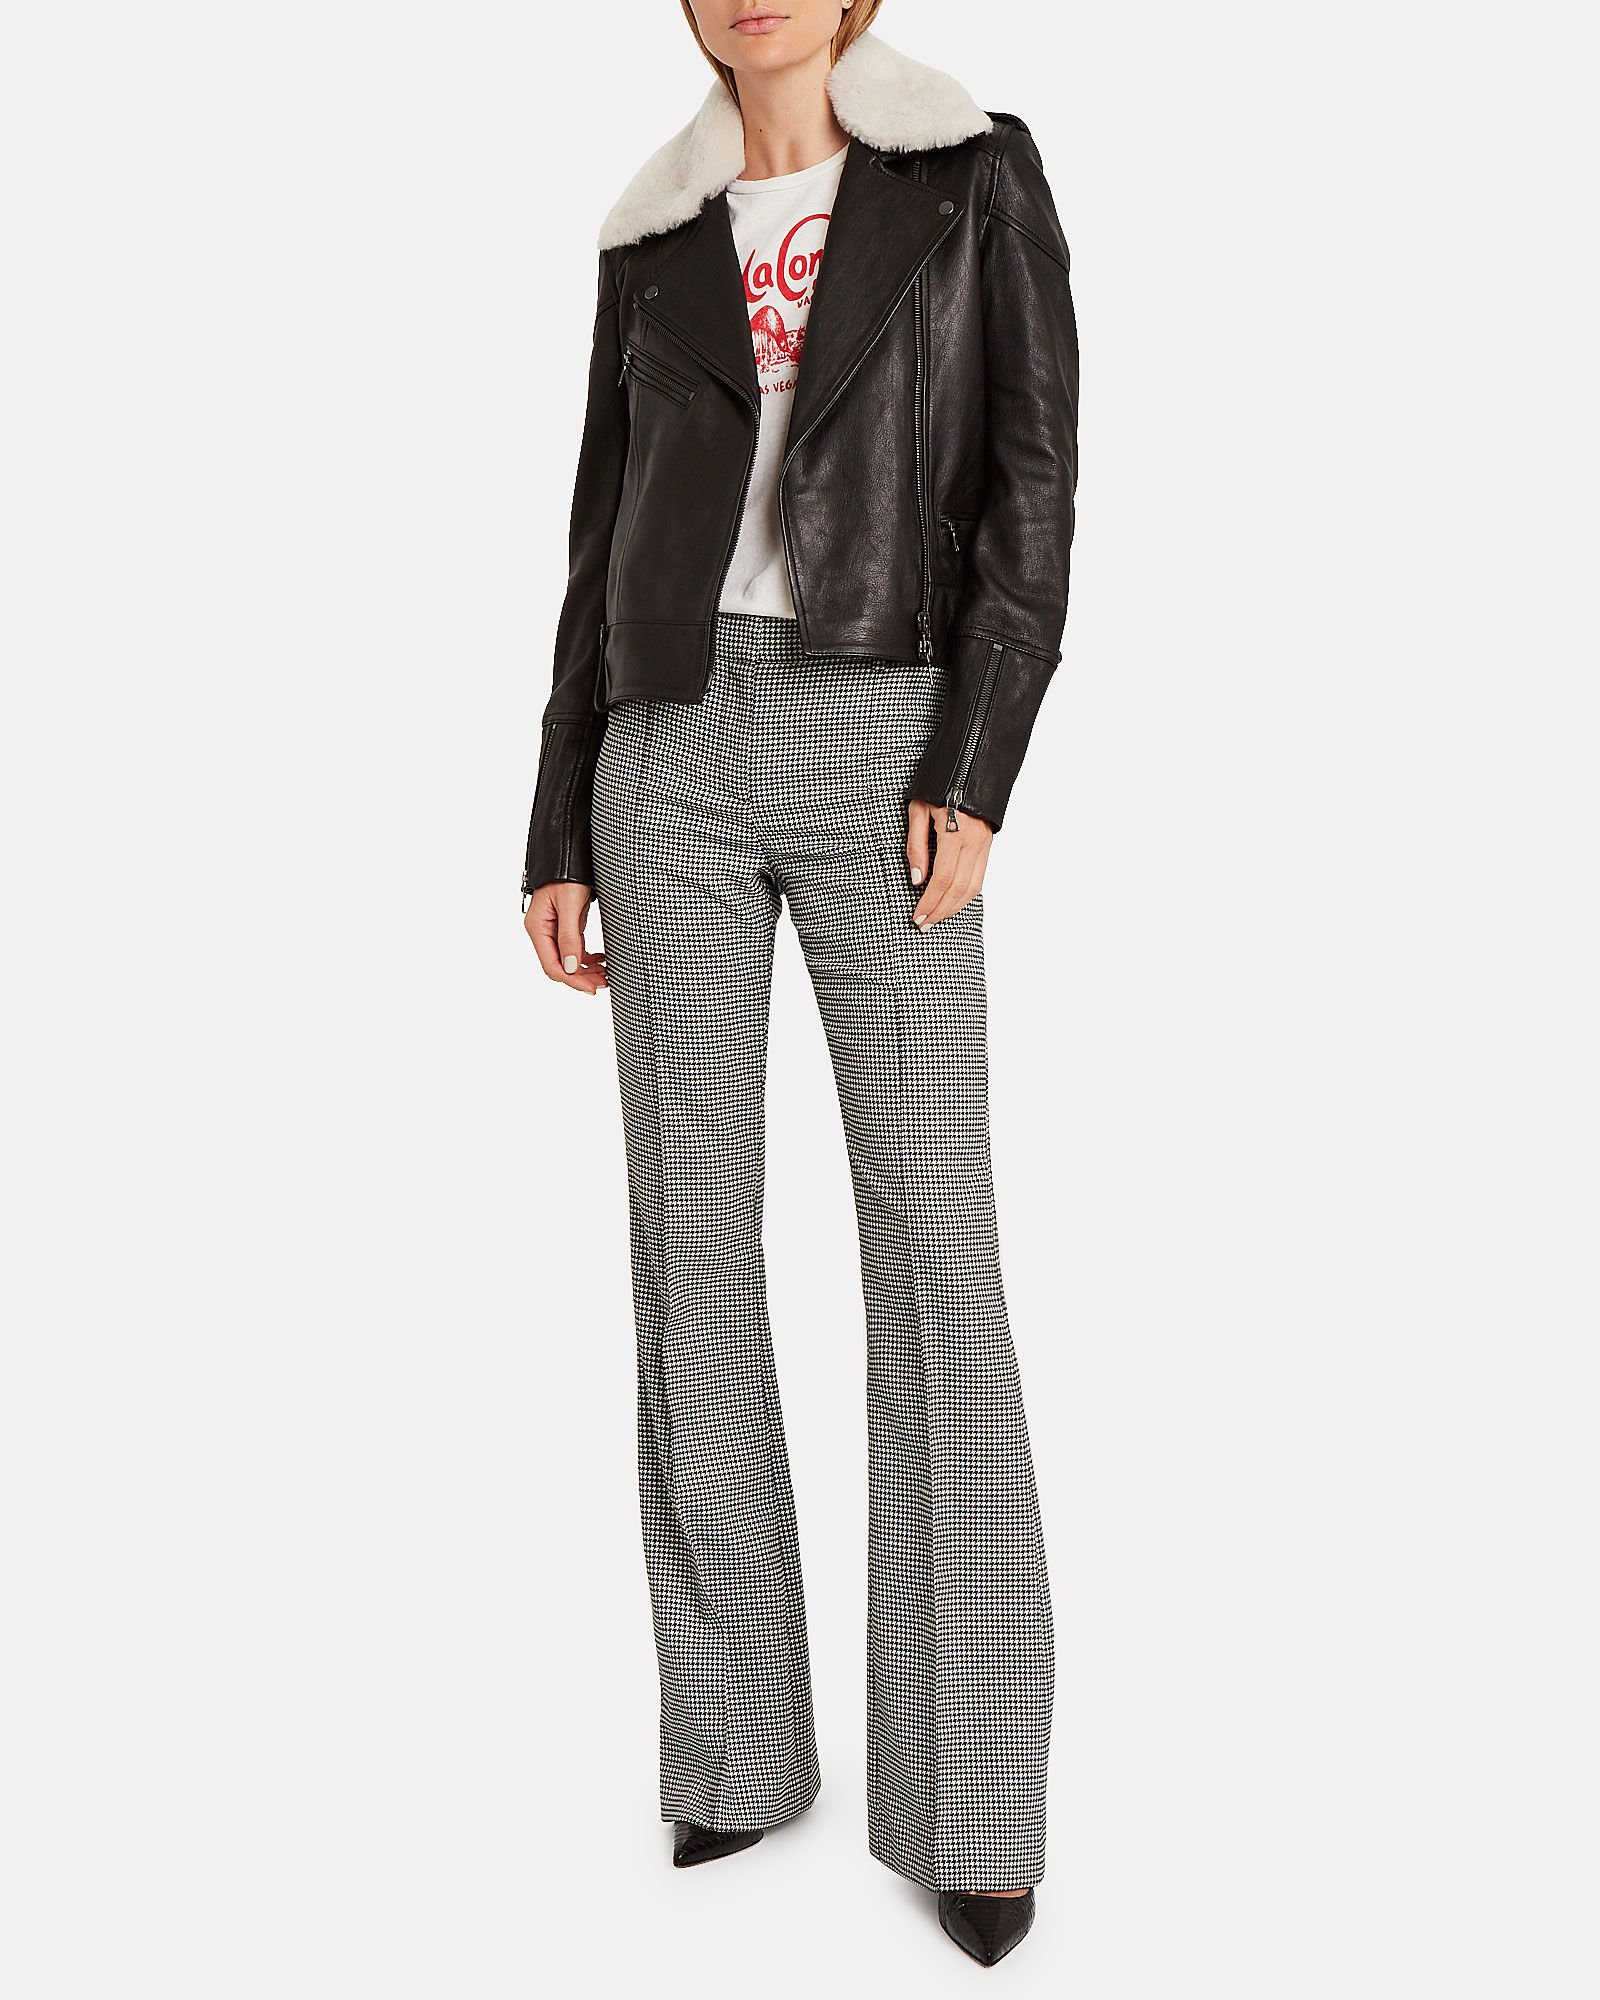 Hibiscus Houndstooth Flared Trousers, BLK/WHT, hi-res